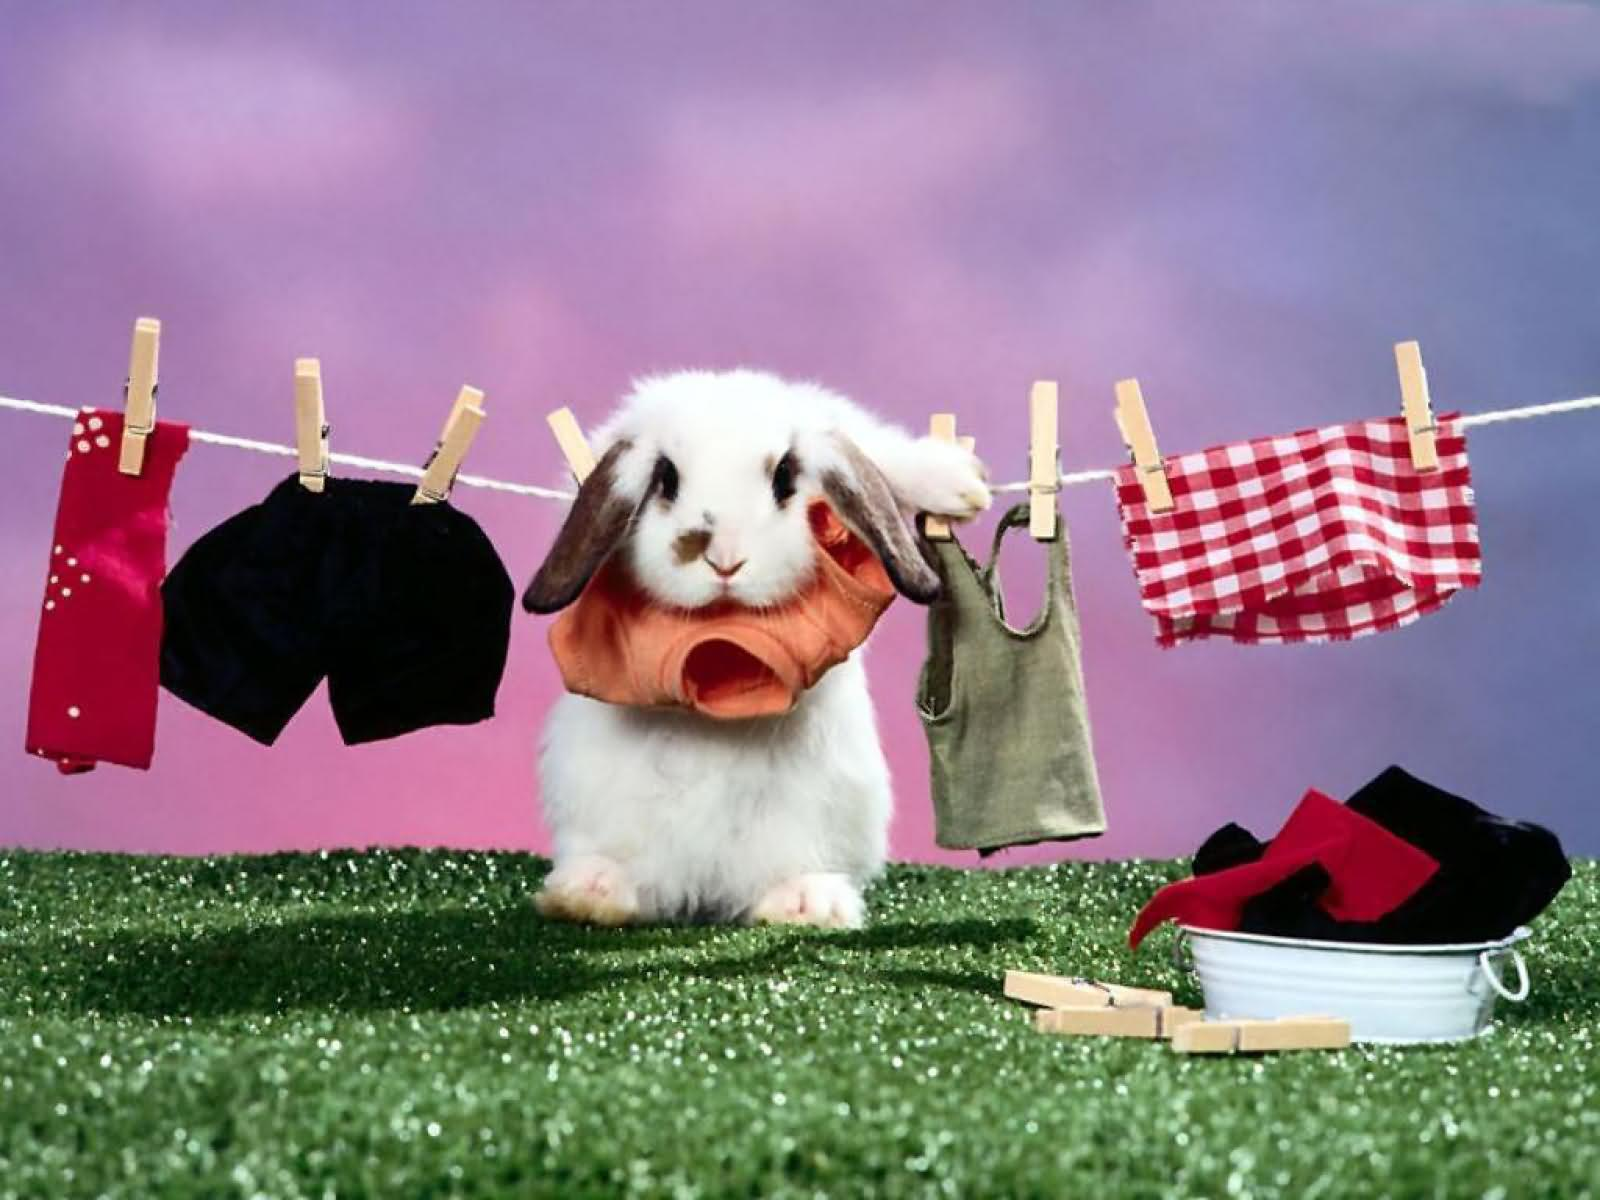 Funny rabbit funny rabbit pictures pictures of rabbits funny - Funny Rabbit Animated Picture